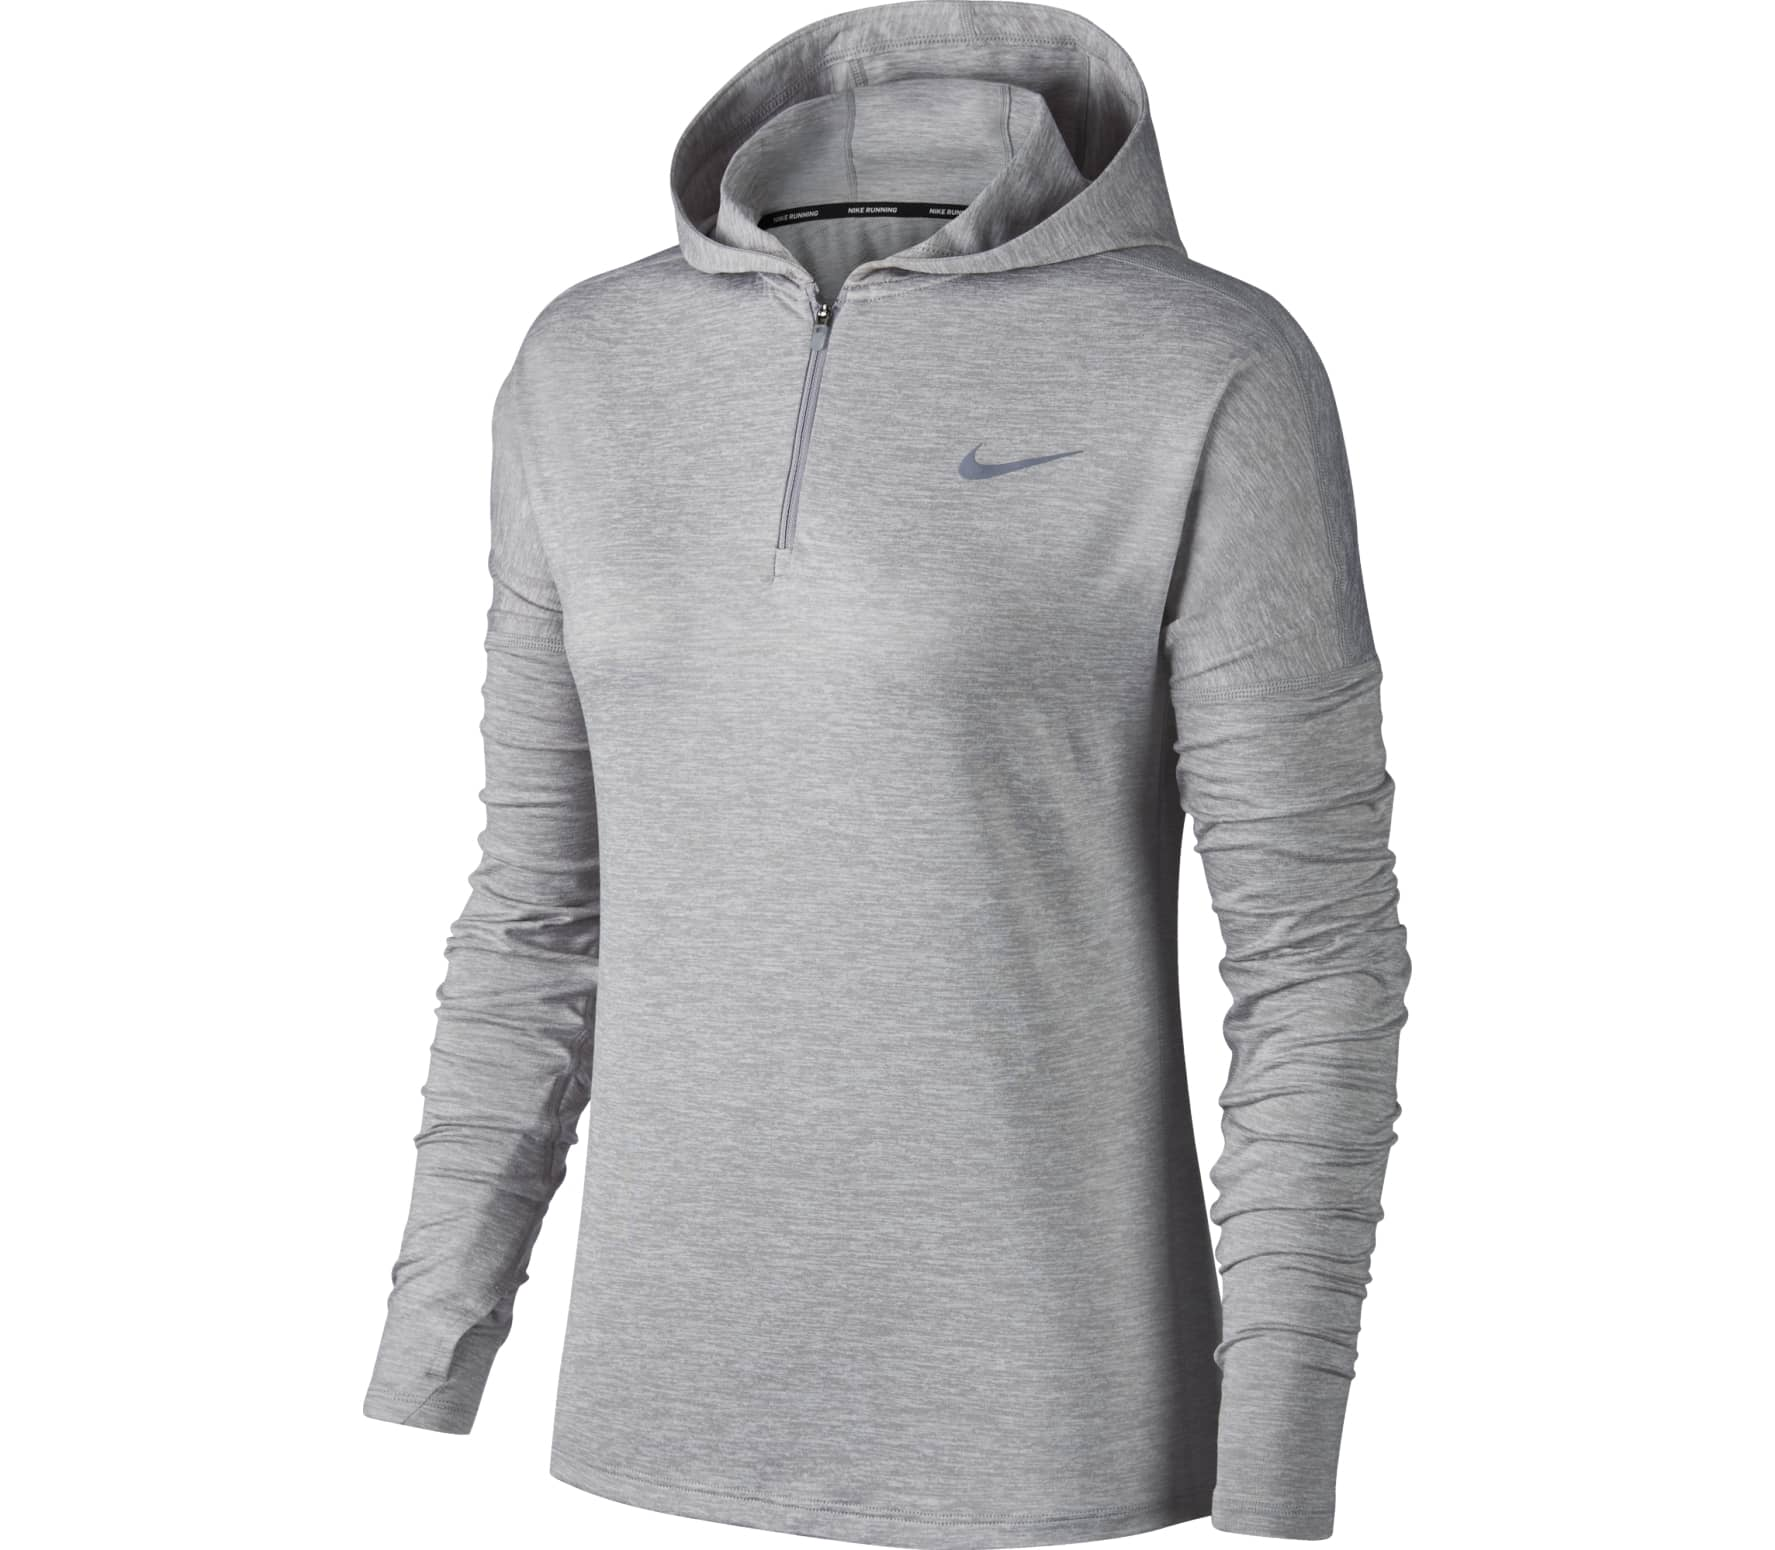 853d6d2a092b Nike - Dry Element women s running hoodie (grey) - buy it at the ...